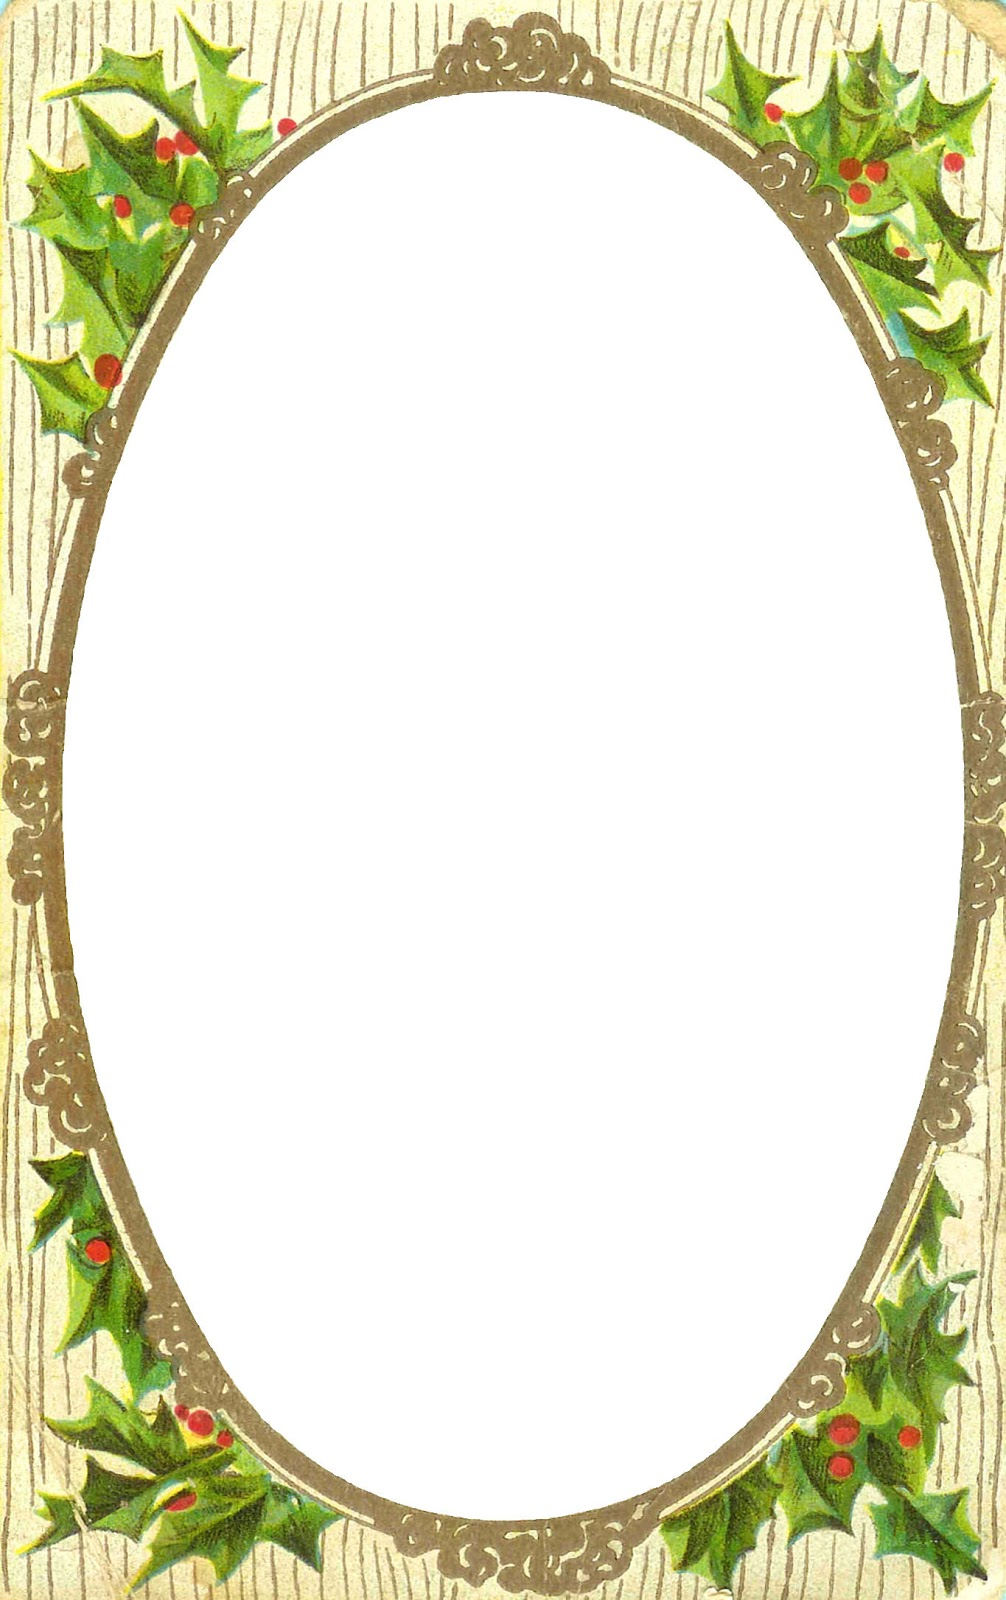 photo regarding Free Christmas Clipart Borders Printable identify Xmas Clip Artwork Printables Free of charge Xmas Guidelines